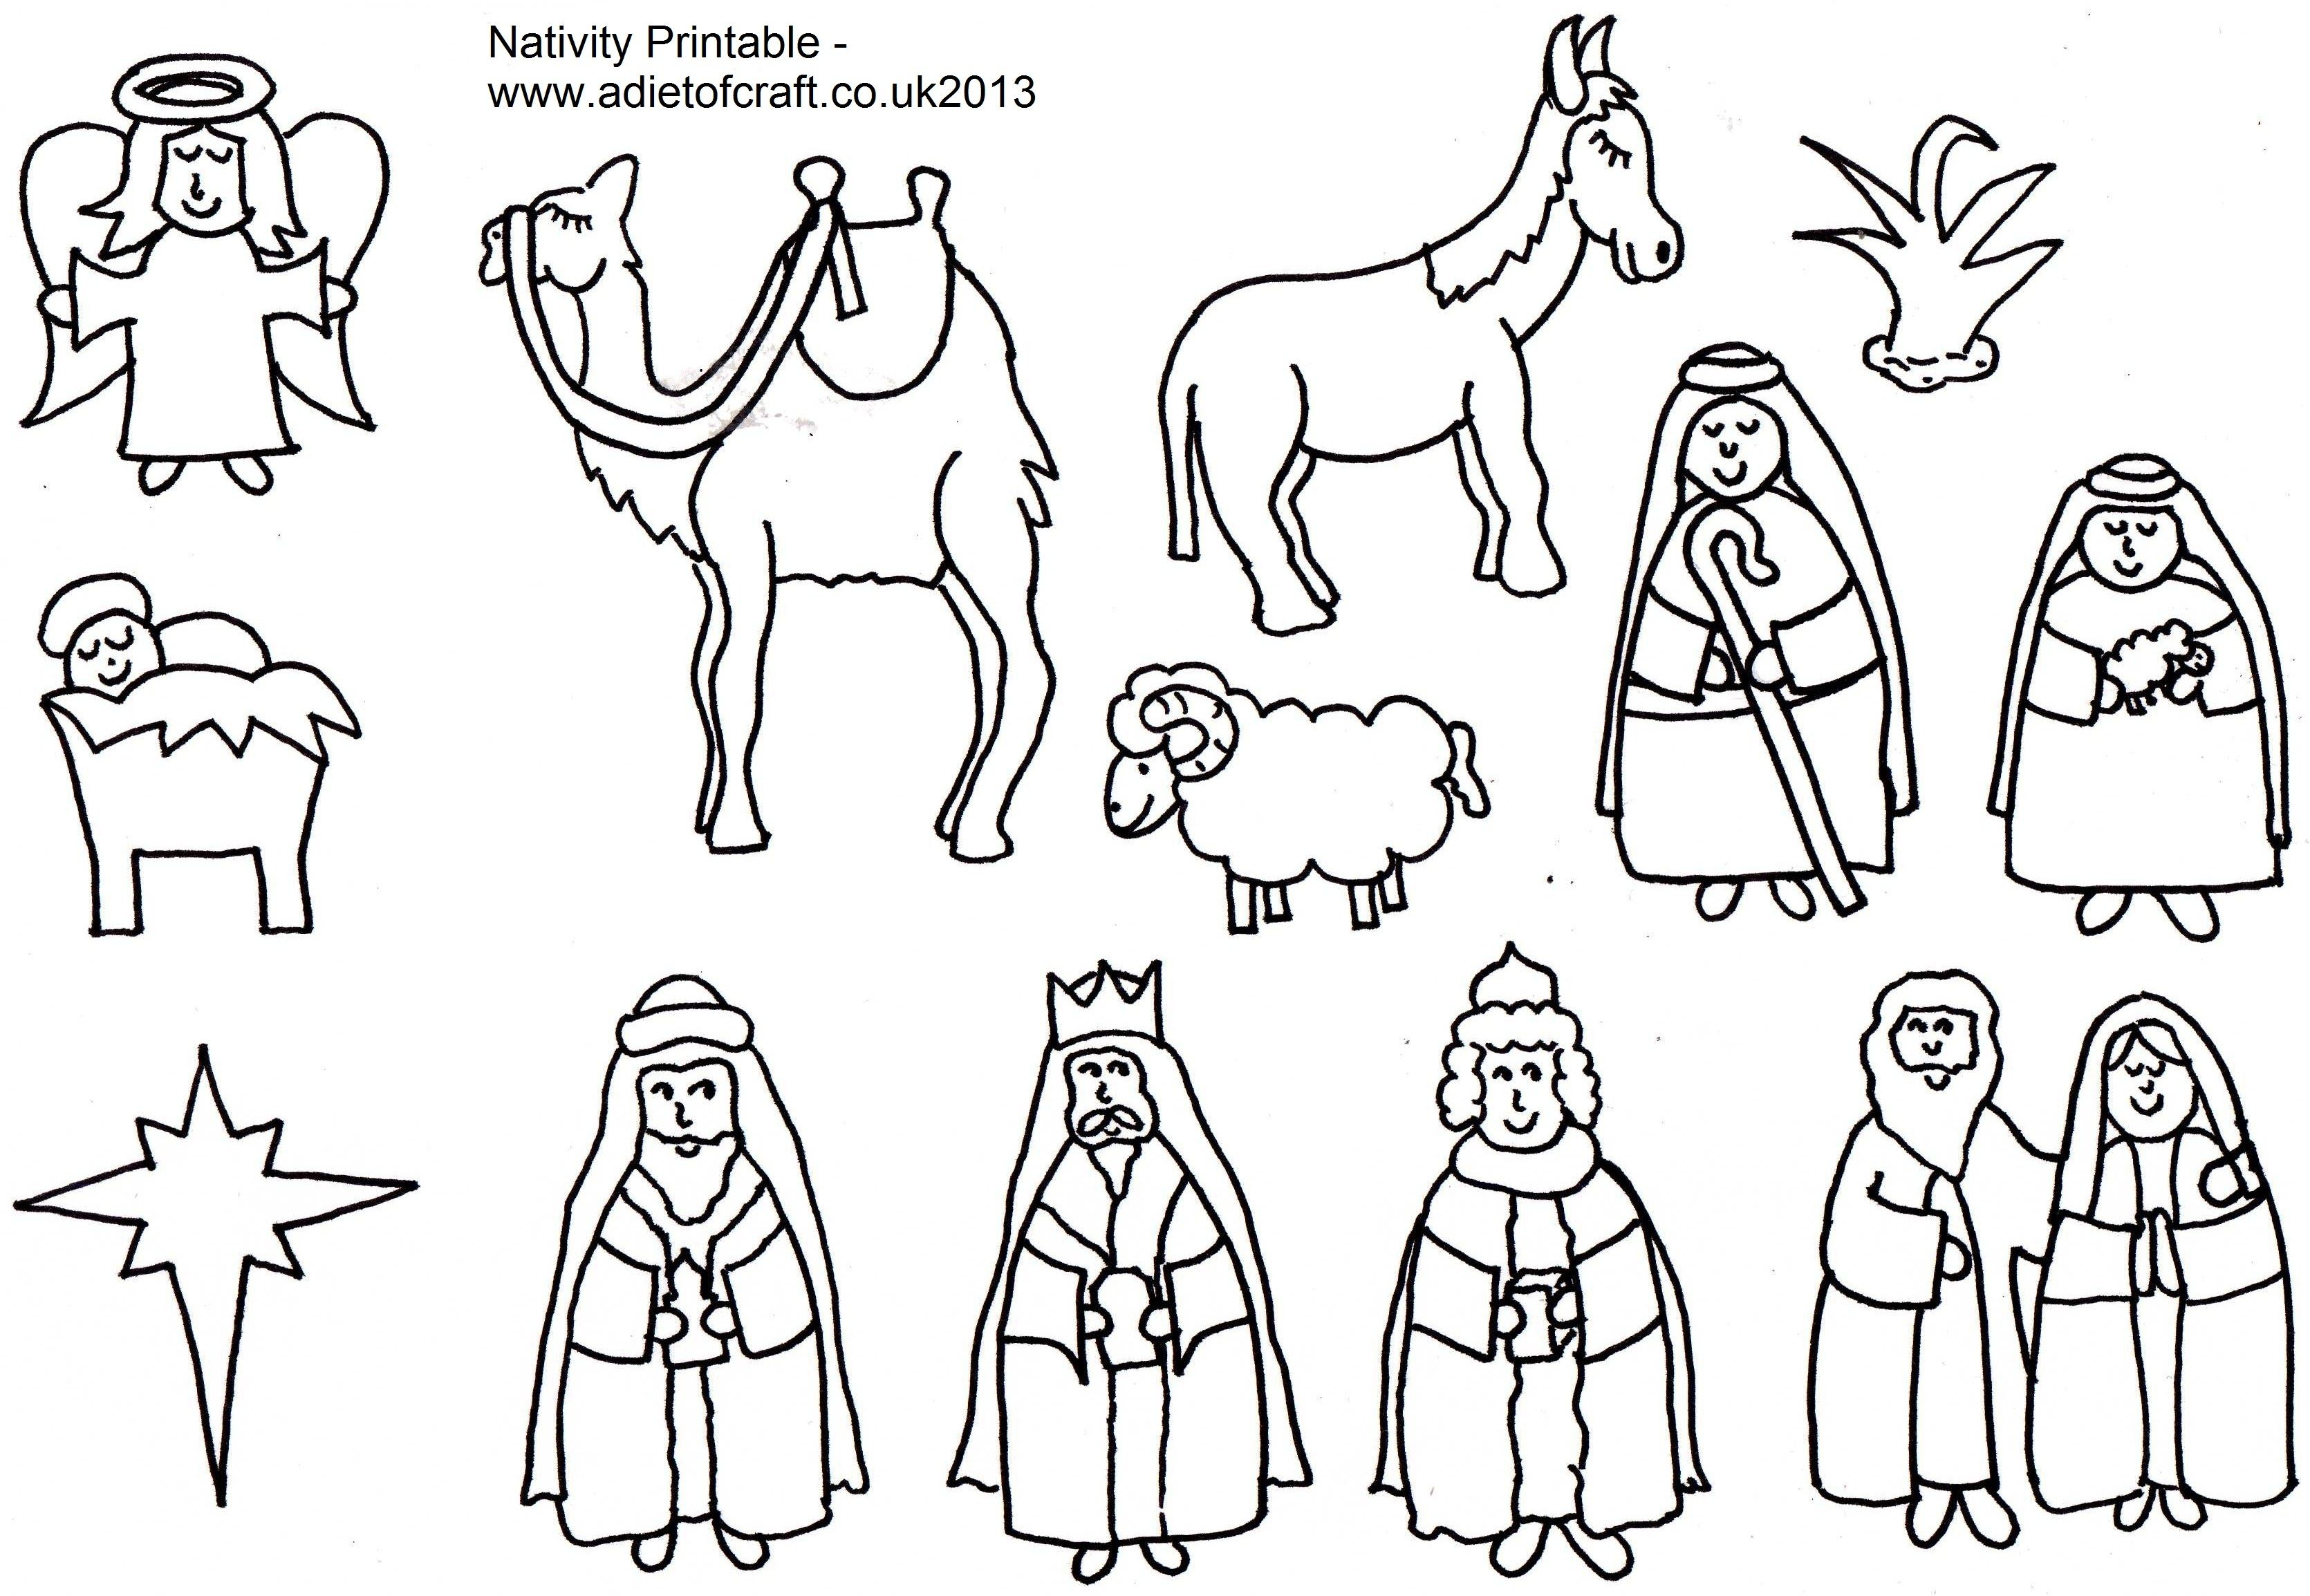 Christmas Colouring Pages Nativity With Adult Coloring Of The Free In